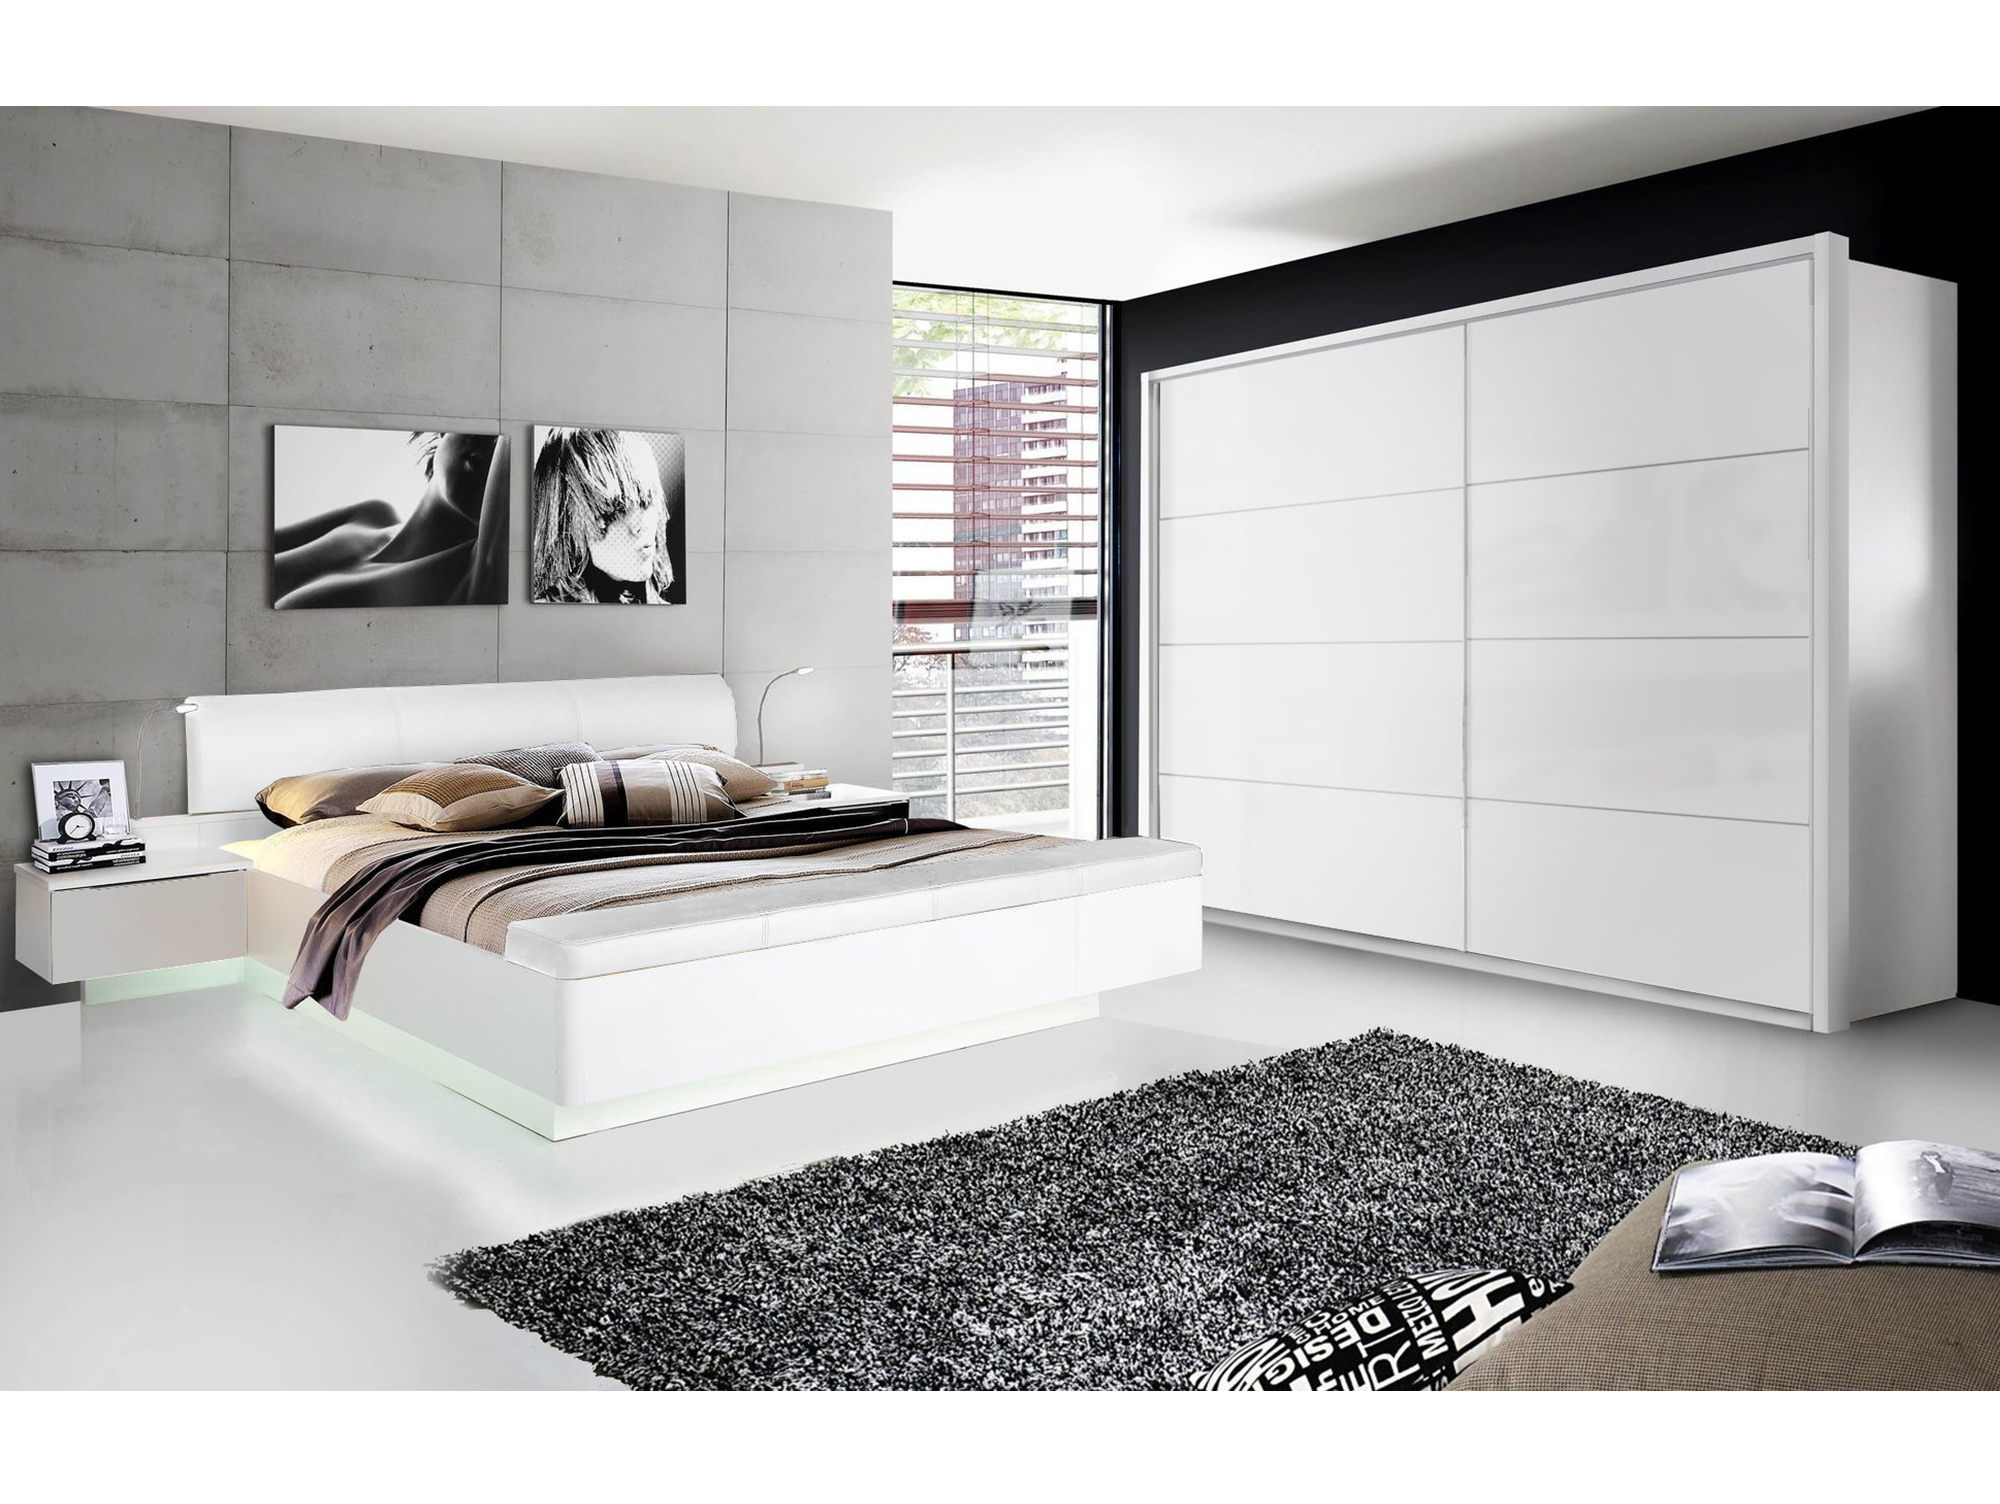 silent komplett schlafzimmer weiss hochglanz 4 teilig 200 cm. Black Bedroom Furniture Sets. Home Design Ideas